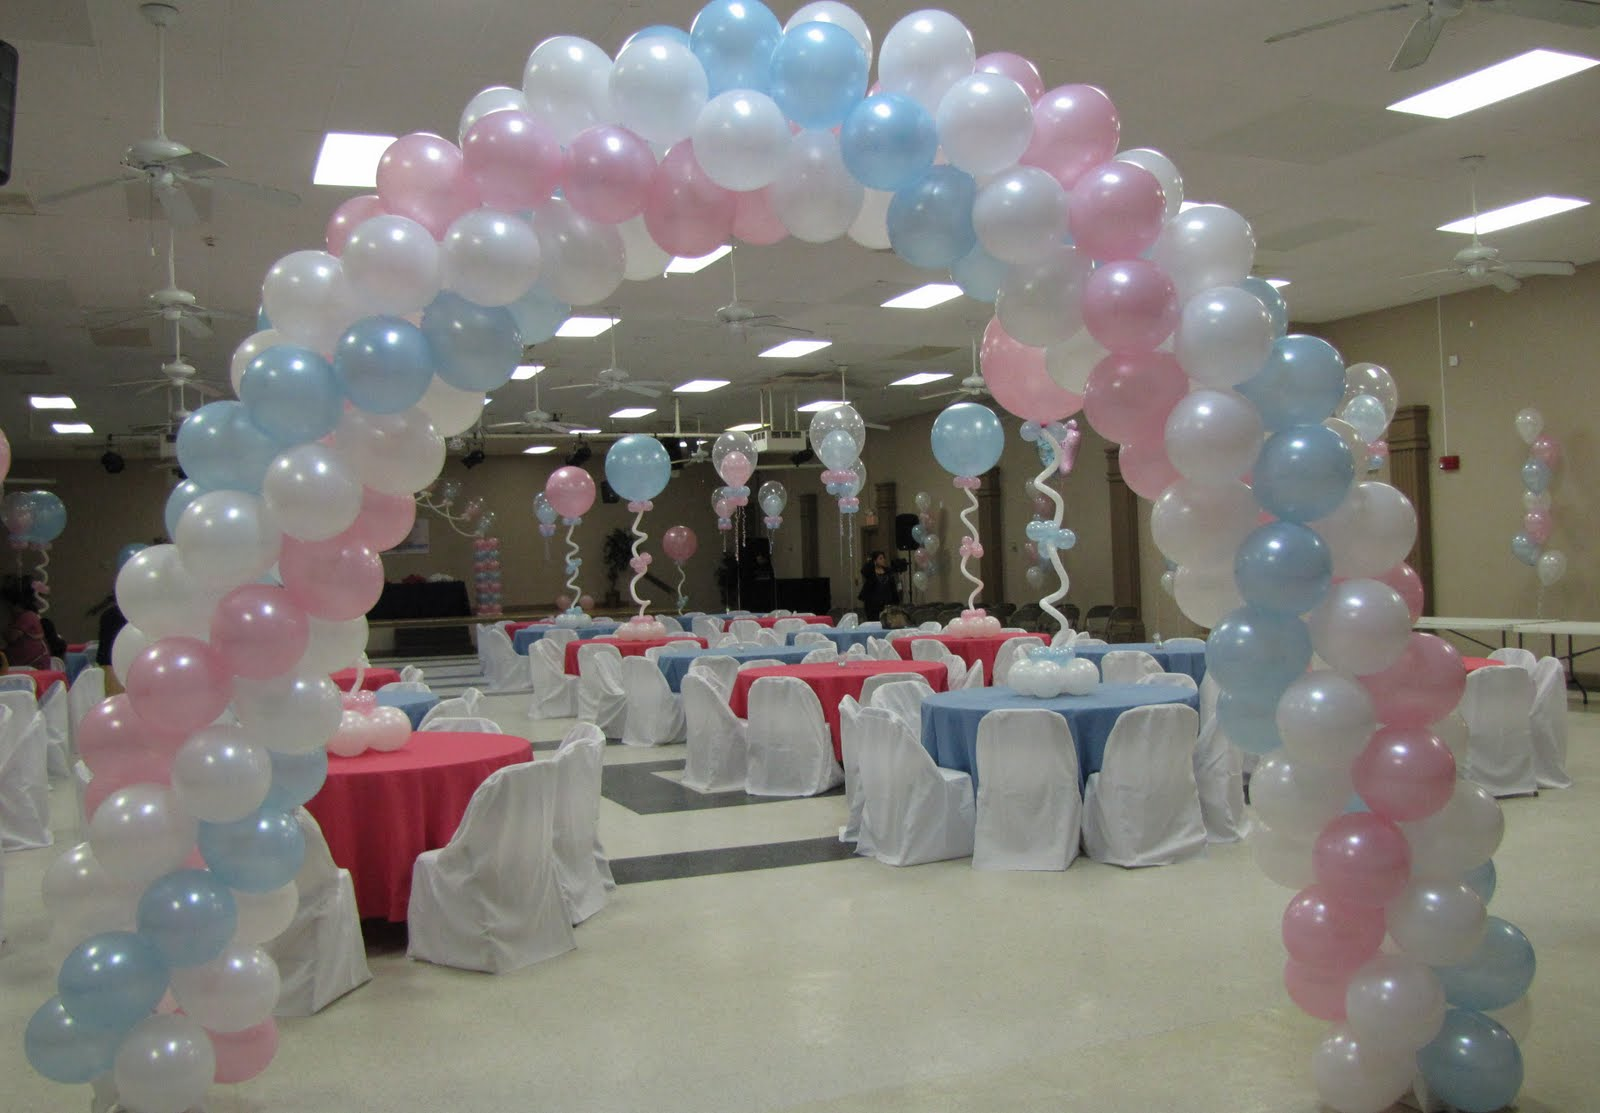 Balloons decorations for baby shower party favors ideas for Baby shower party hall decoration ideas